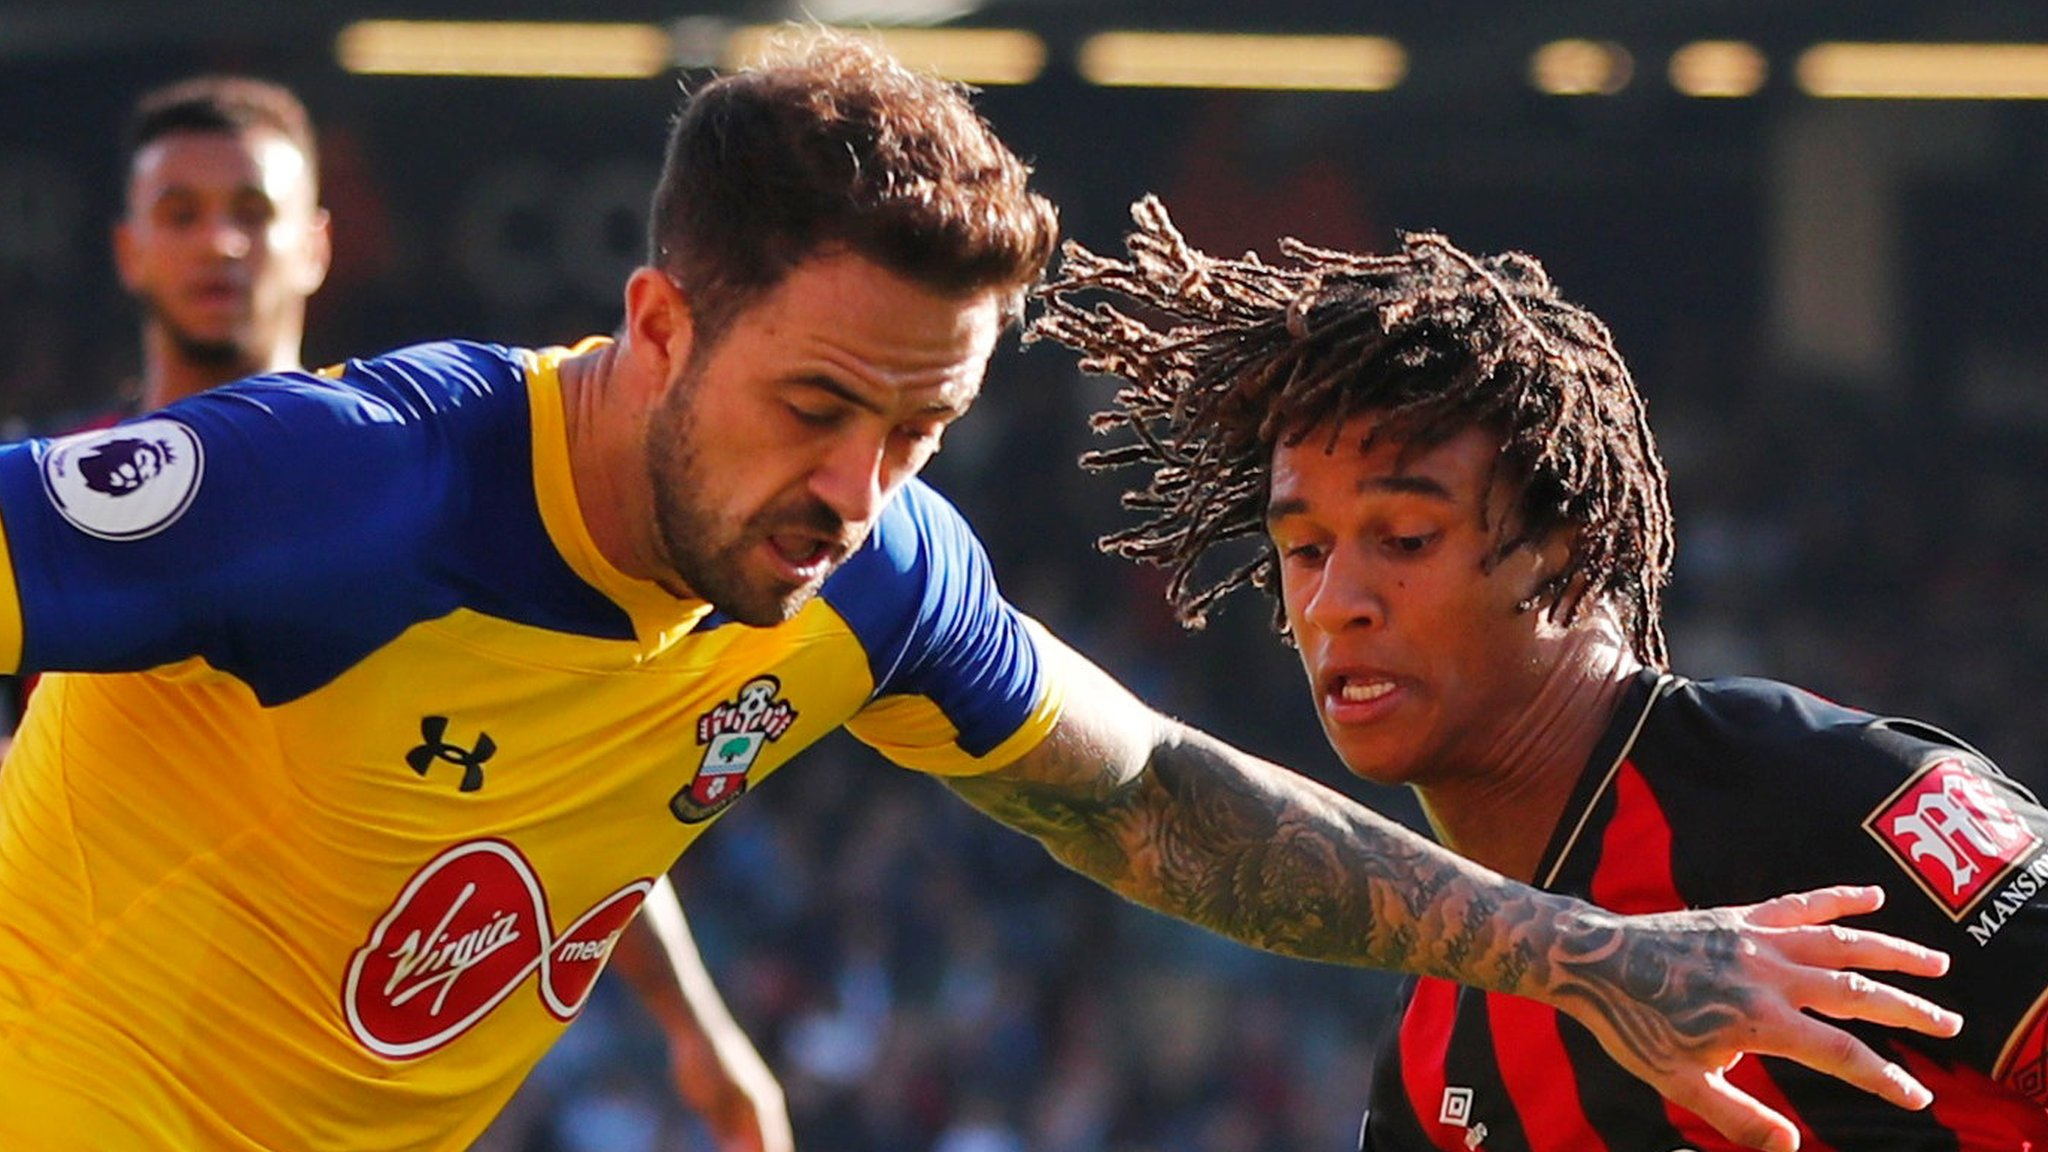 Premier League: Bournemouth and Southampton play out stalemate